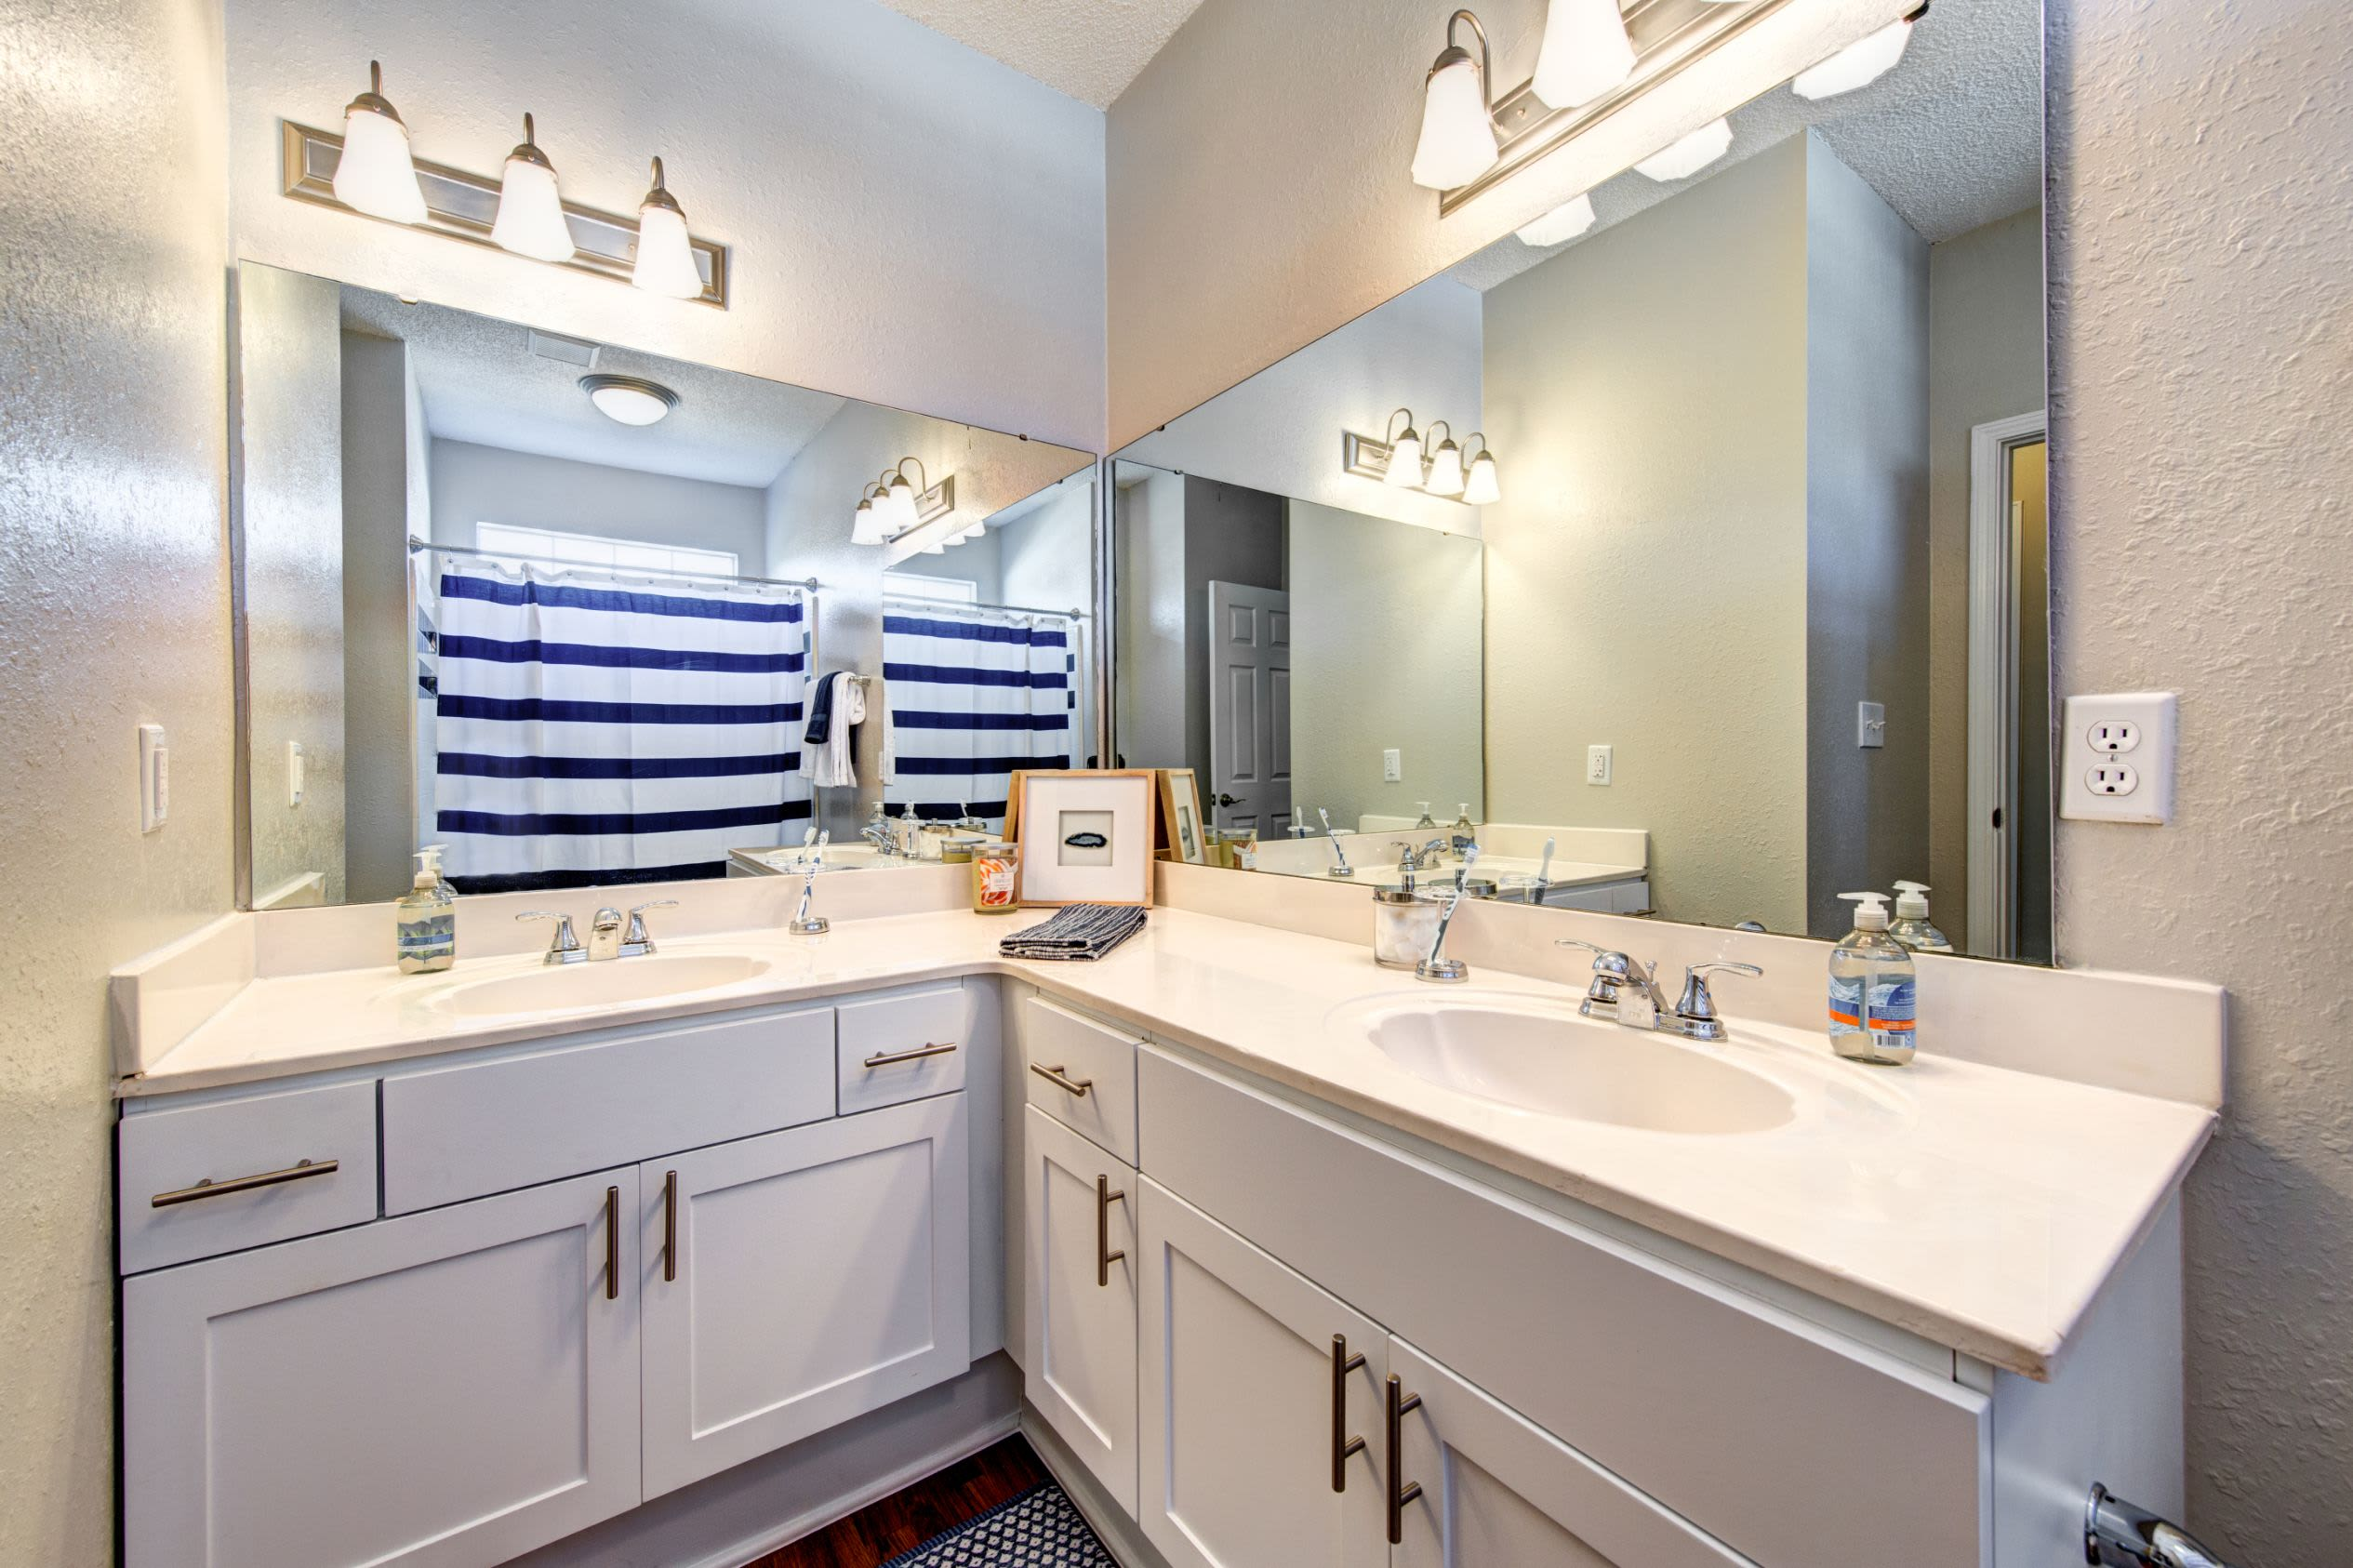 Bathroom with a large vanity at Marquis on Edwards Mill in Raleigh, North Carolina